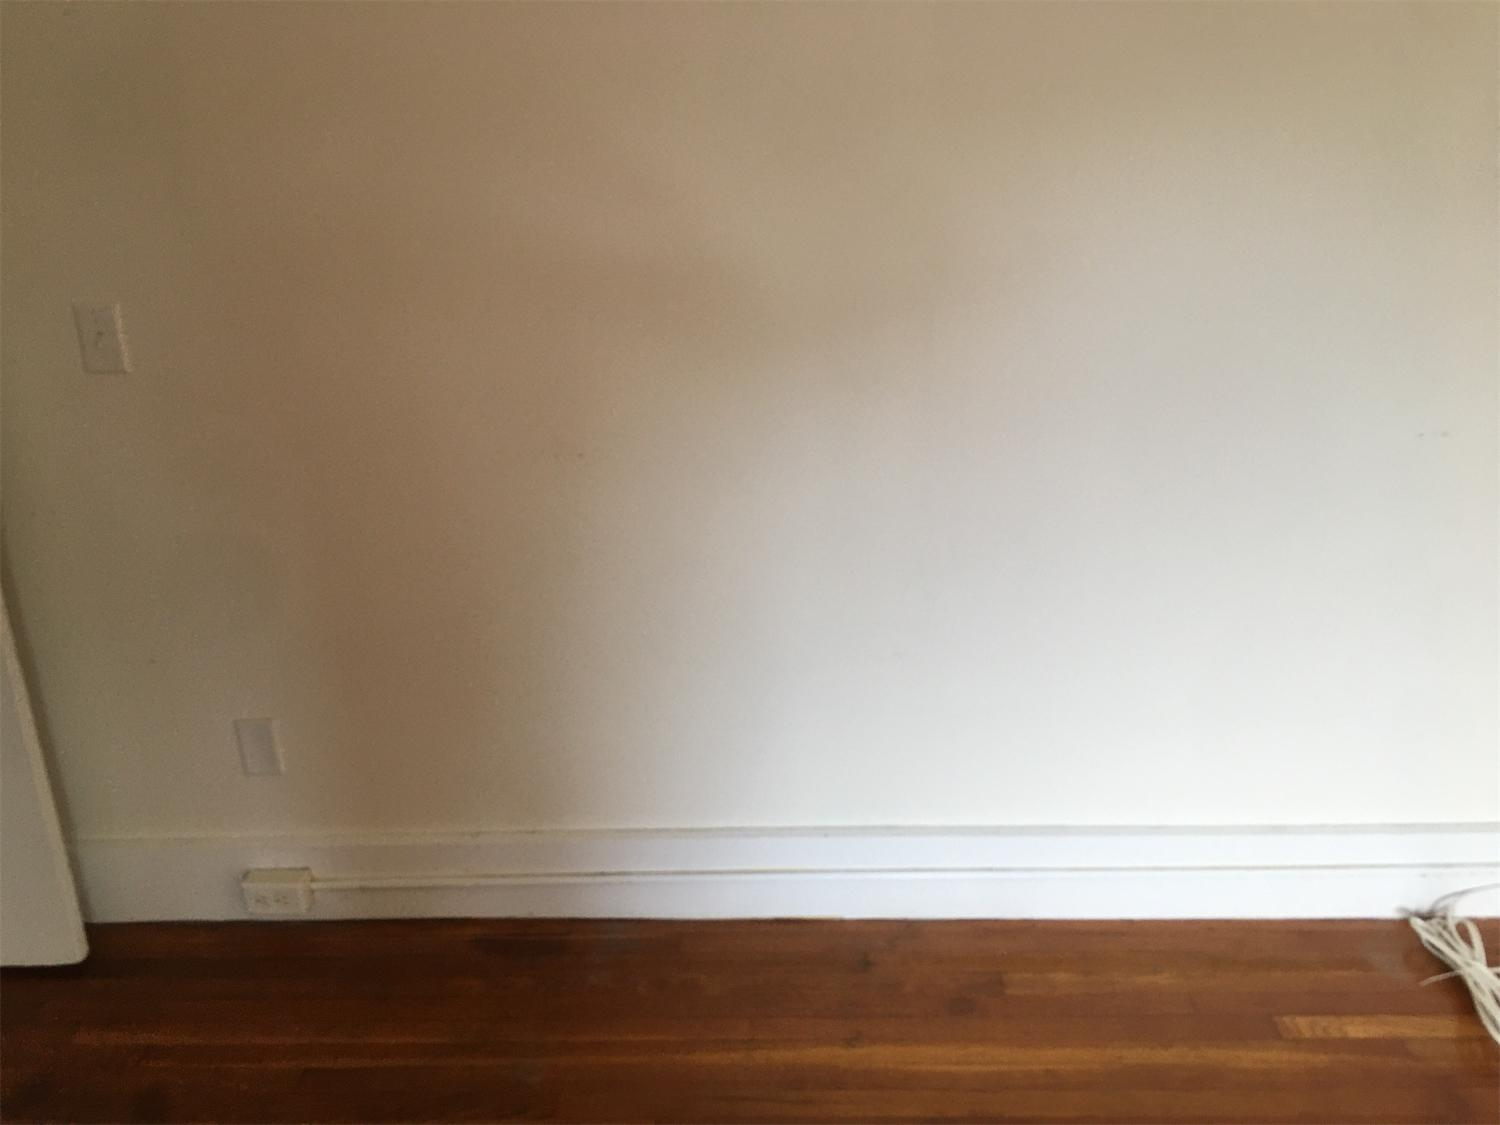 Hudson, MA Furniture Removal Service - After Photo